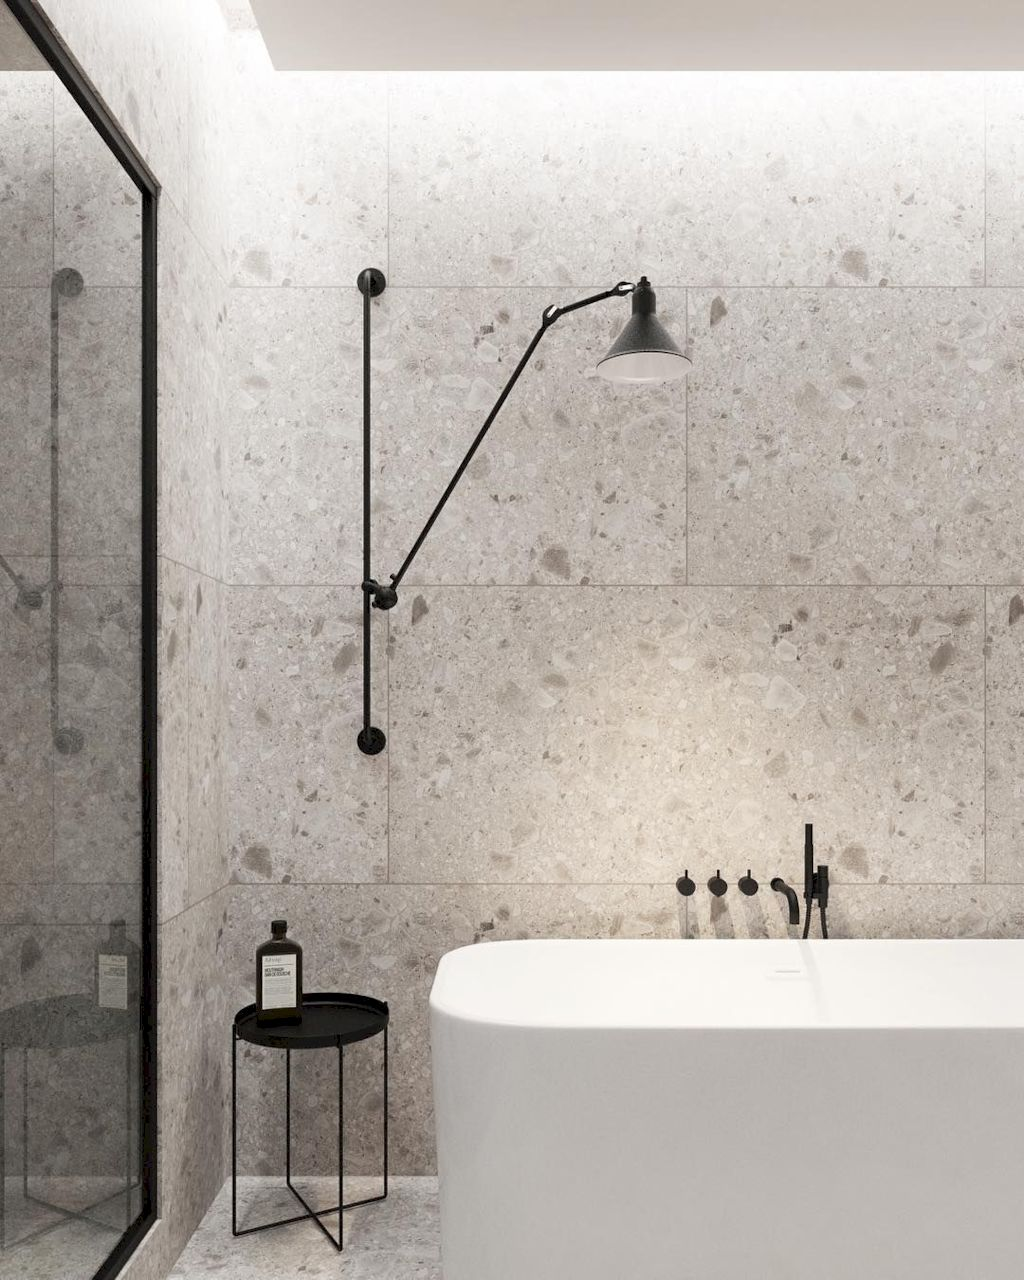 Terrazzo tiles used in bathroom renovation showing classical comeback that bring an artistic retro statement in your home Image 50